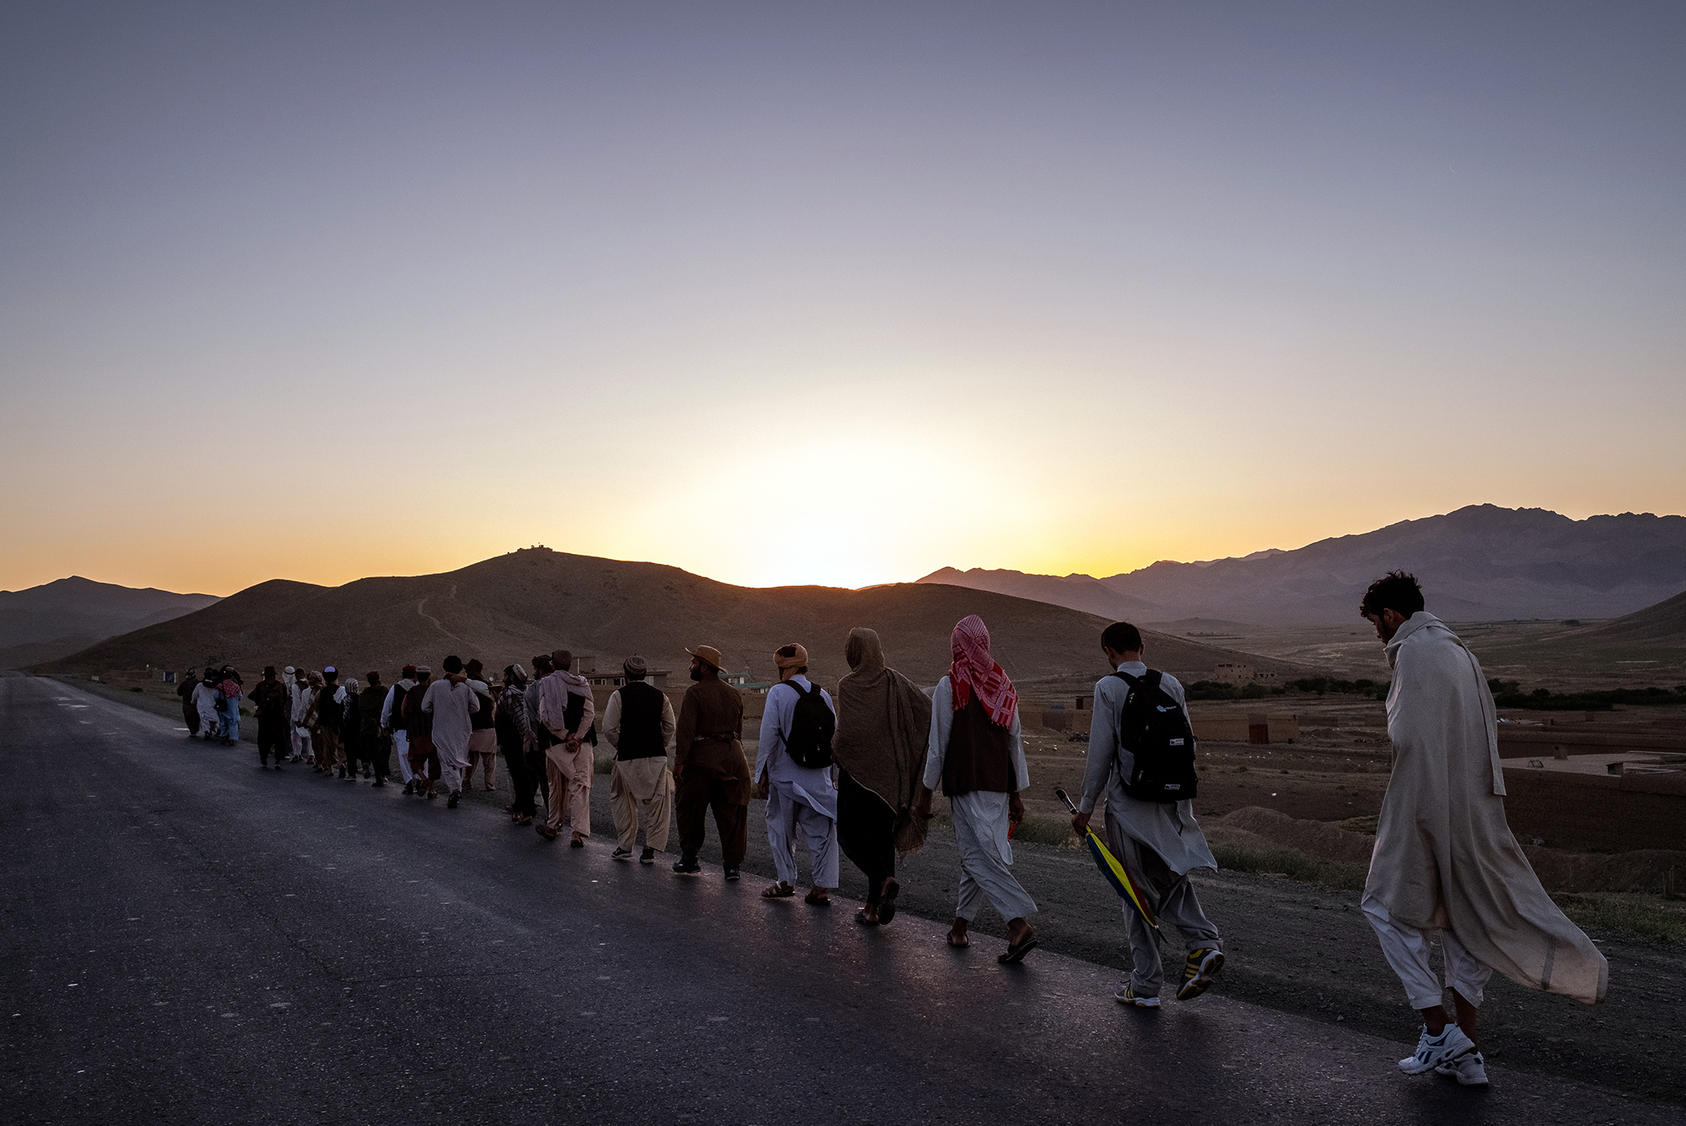 Dozens of men march for peace through southern Afghanistan, near Ghazni, on June 12, 2018. Talks between the Americans and the Taliban have many Afghans caught up in the hope of an unprecedented moment. (Jim Huylebroek/The New York Times)